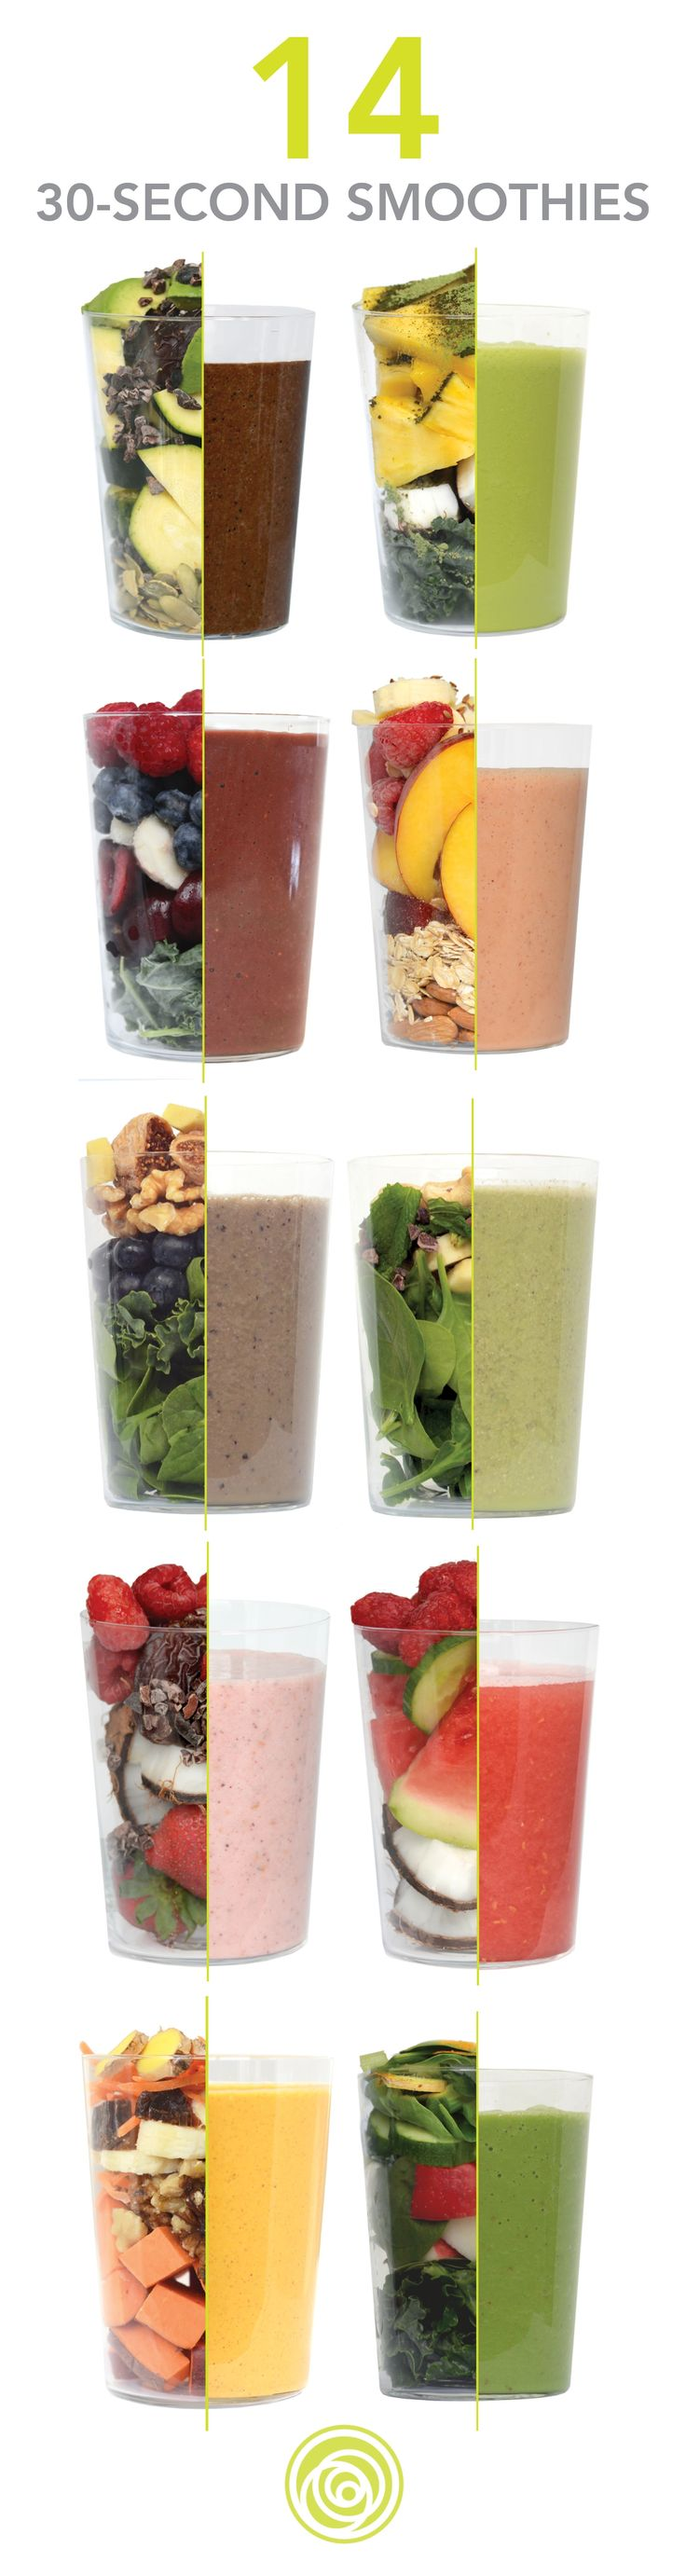 Ready-to-blend frozen smoothies delivered to your door. 14 flavors or raw, whole, real ingredients and superfoods. Just open, blend and enjoy. No prepping, no mess, no leftovers. Get 2 FREE blends with your first box! #weightlosssmoothiesrecipes